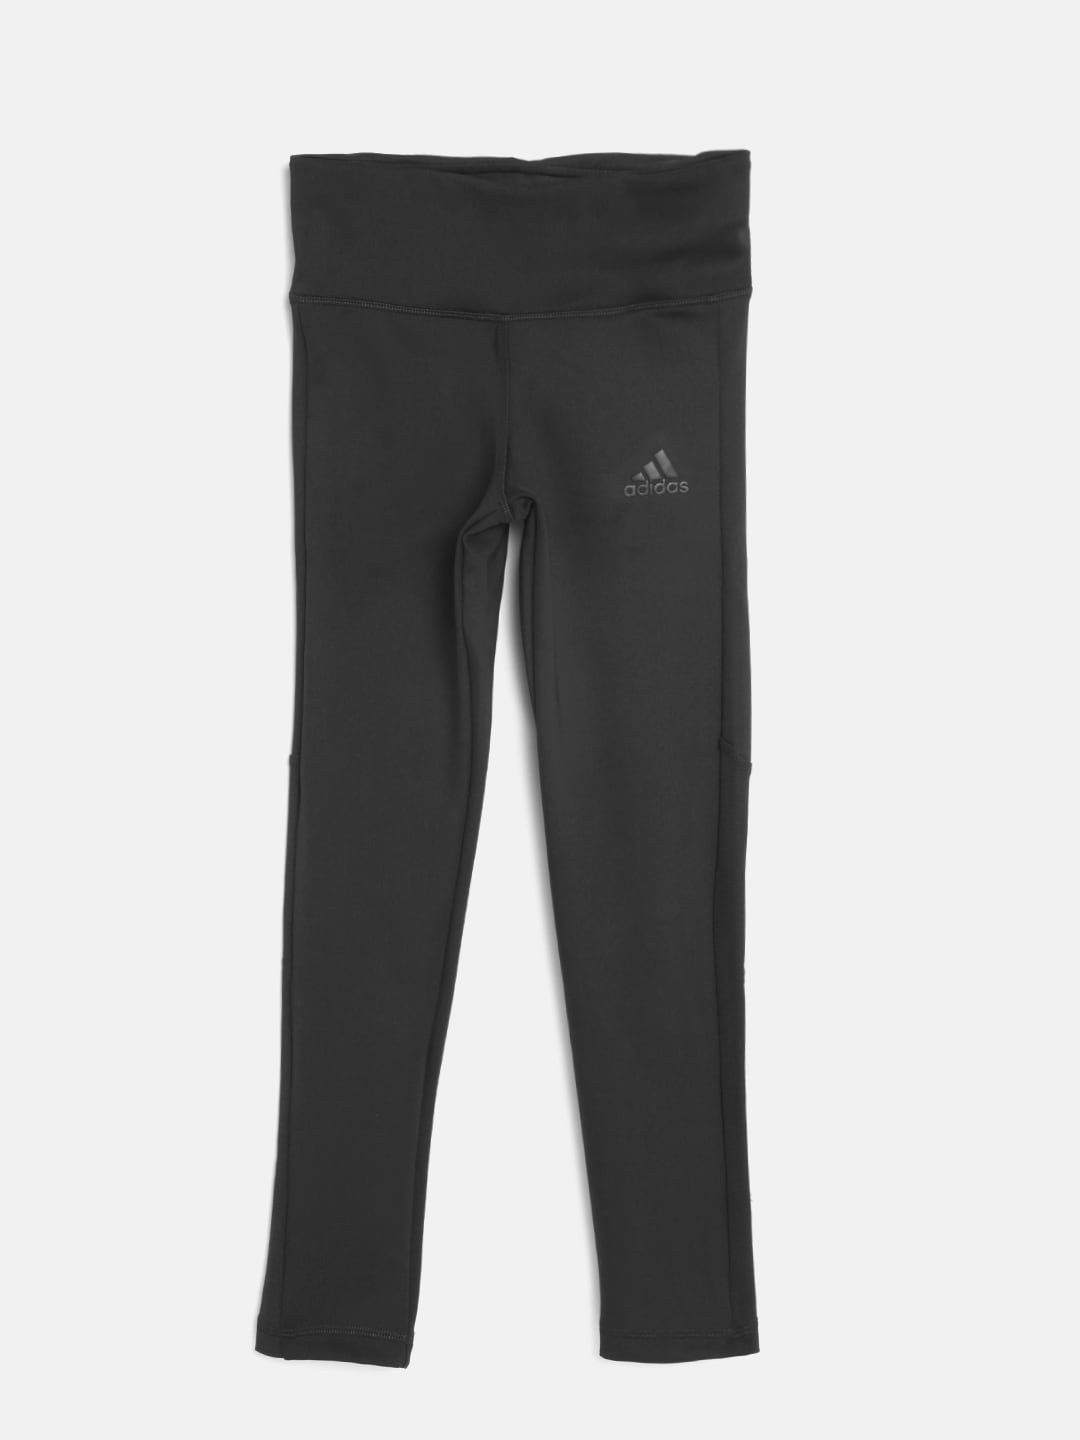 Adidas Flip Flops Tights Belts Tracksuits - Buy Adidas Flip Flops Tights  Belts Tracksuits online in India 4986817affc